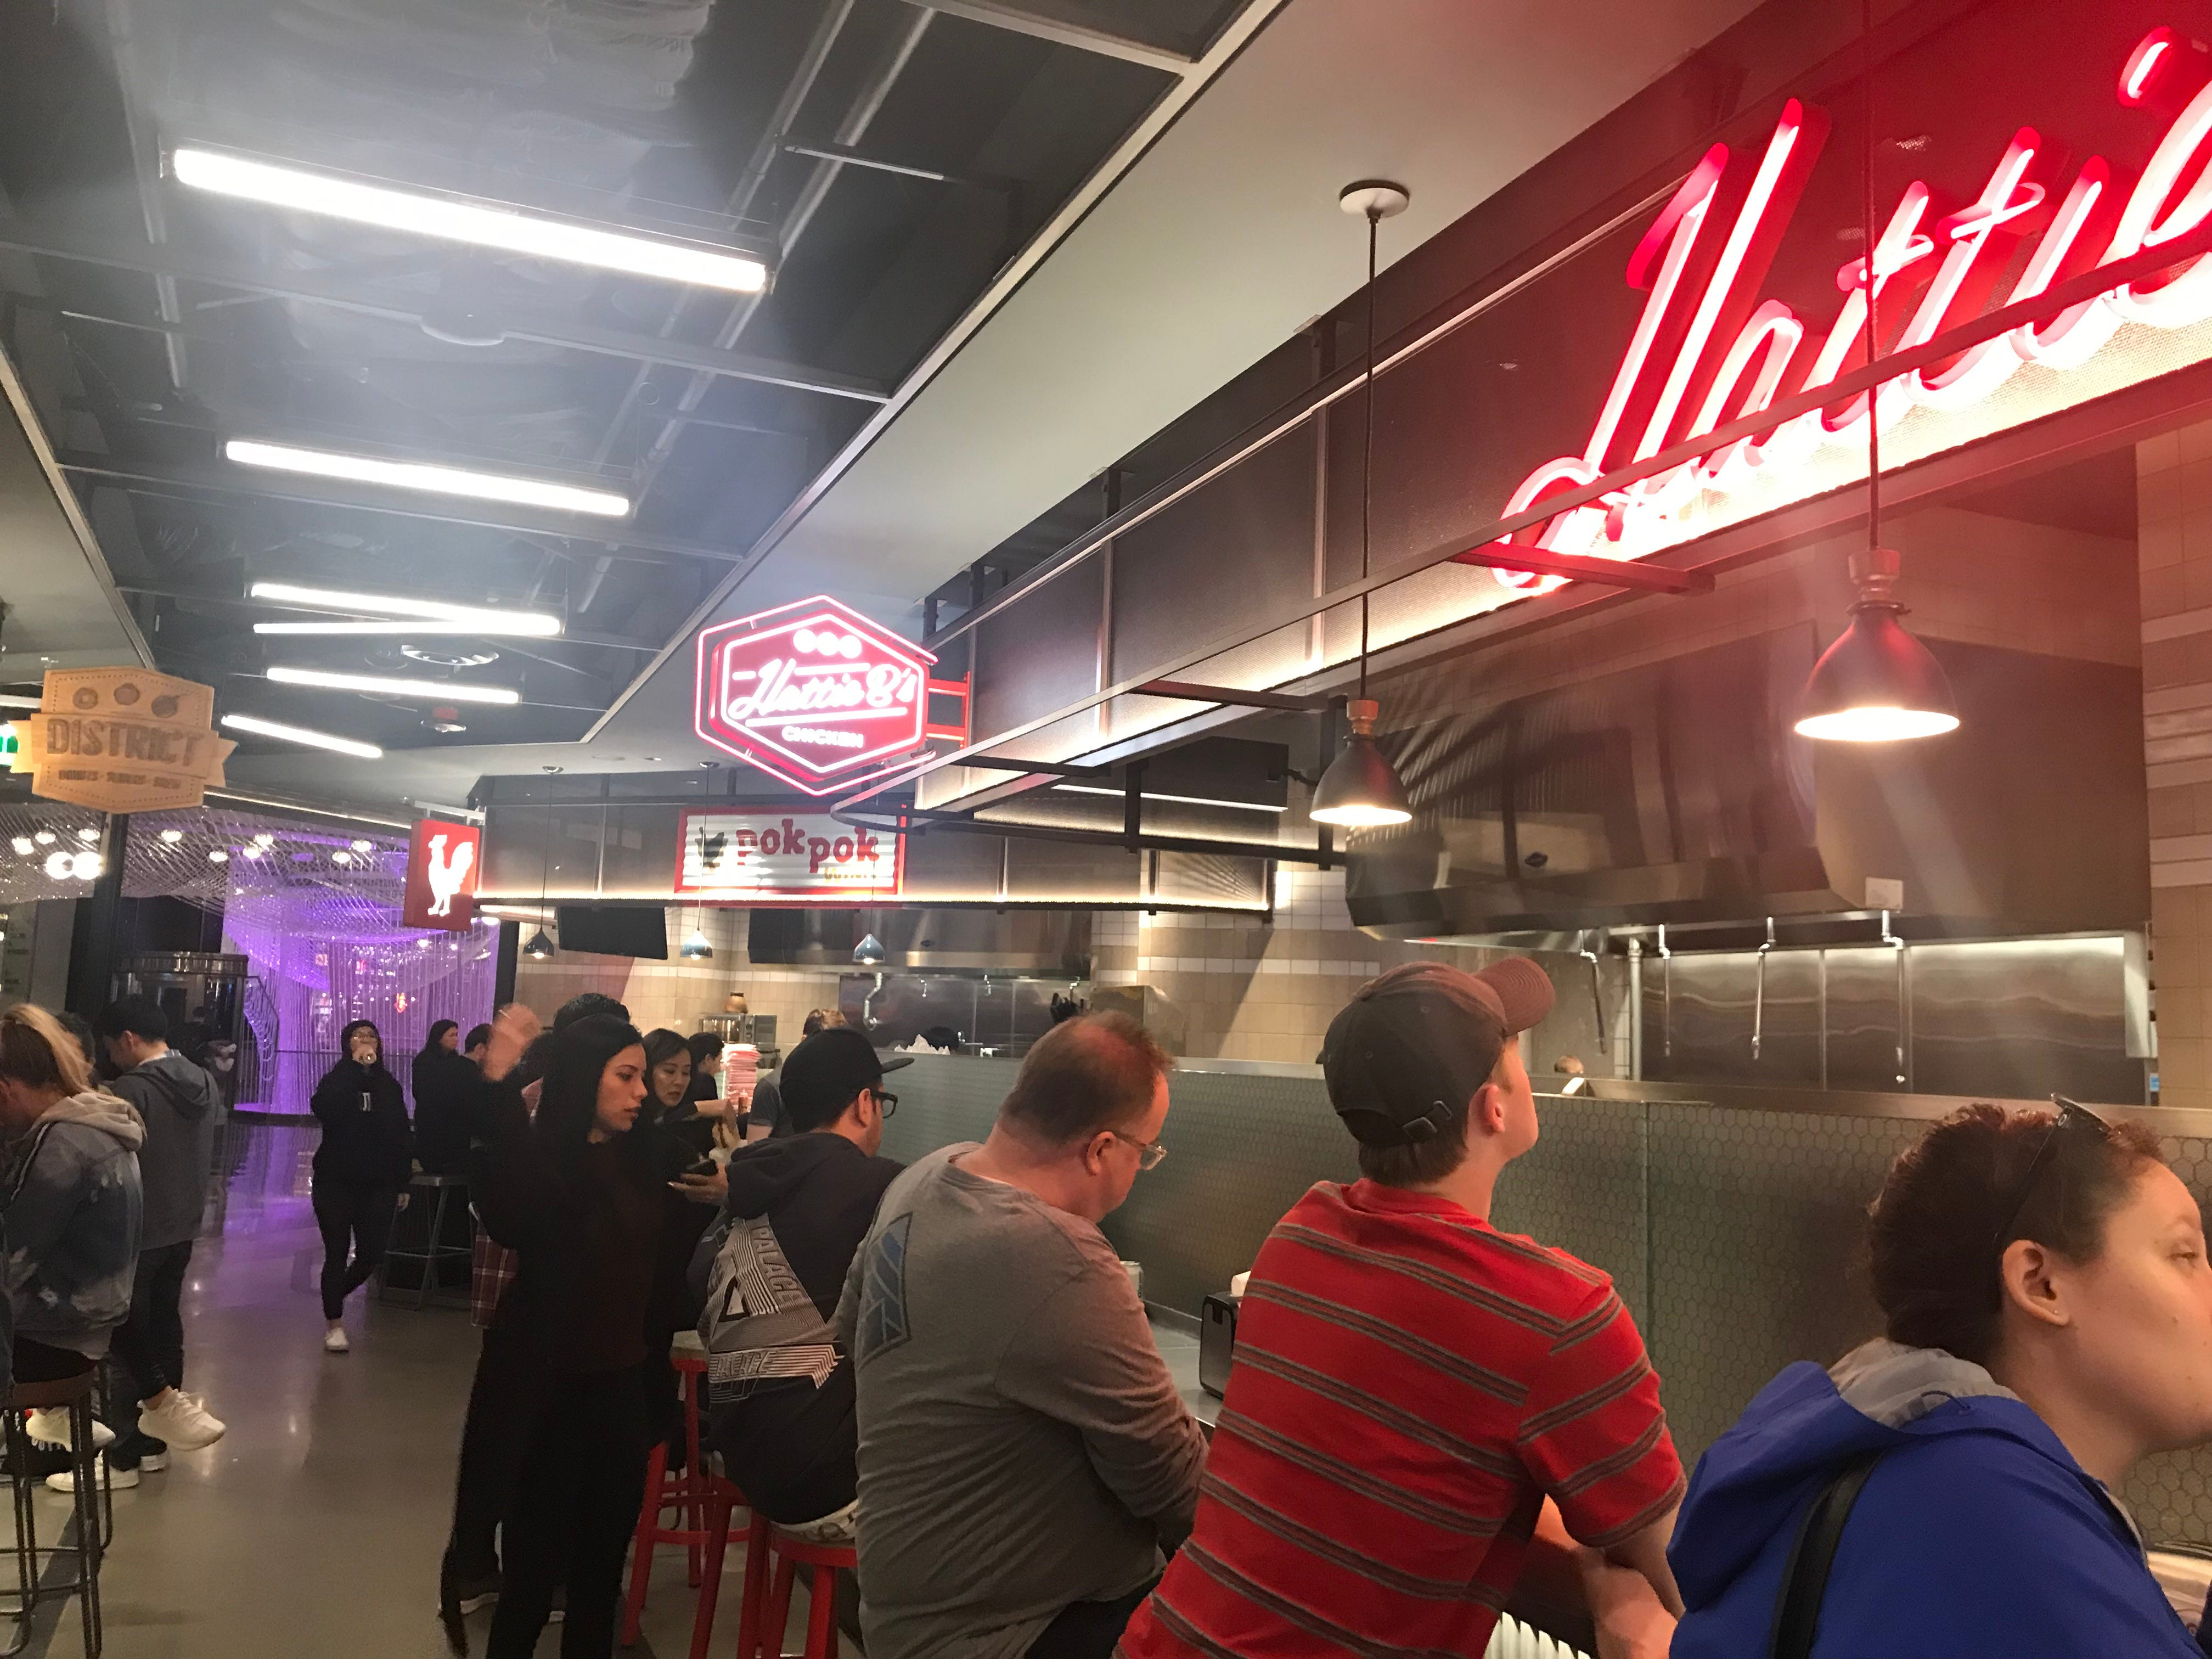 Block 16 is a new food court for foodies at Cosmopolitan Las Vegas, featuring popular restaurants from around the country.